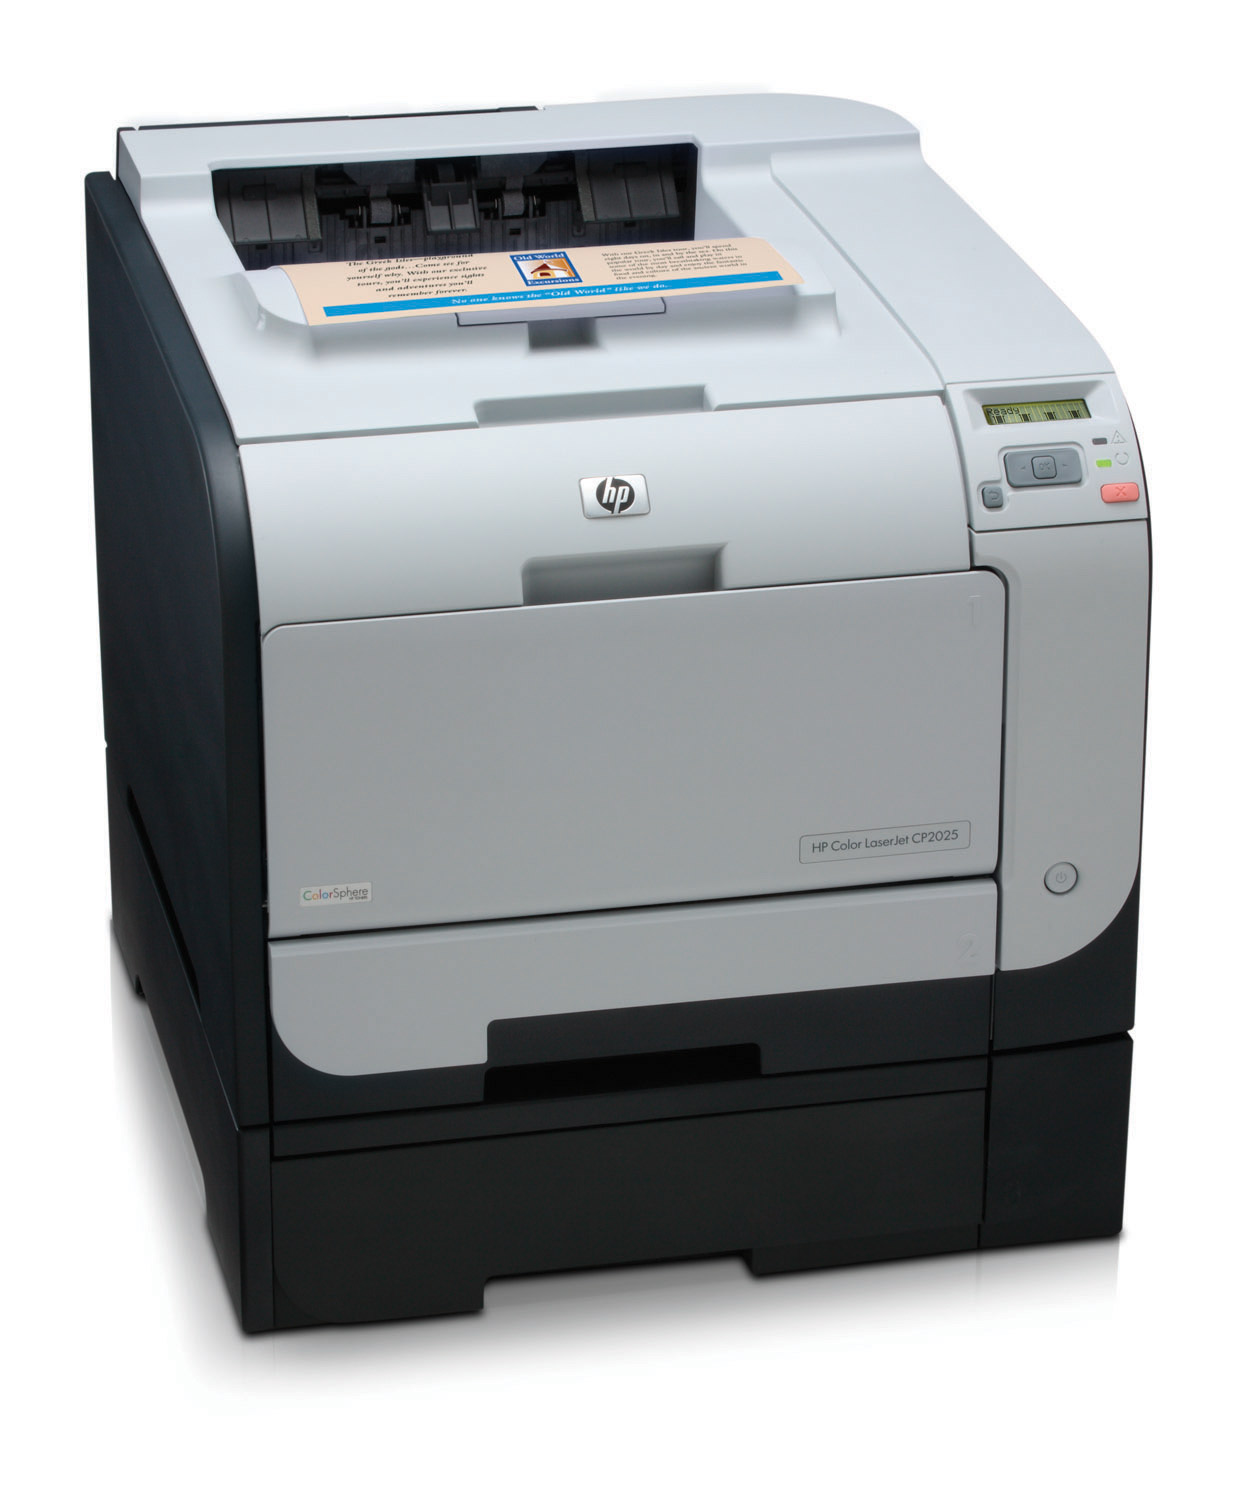 Принтер HP Color LaserJet CP2025 CB493A